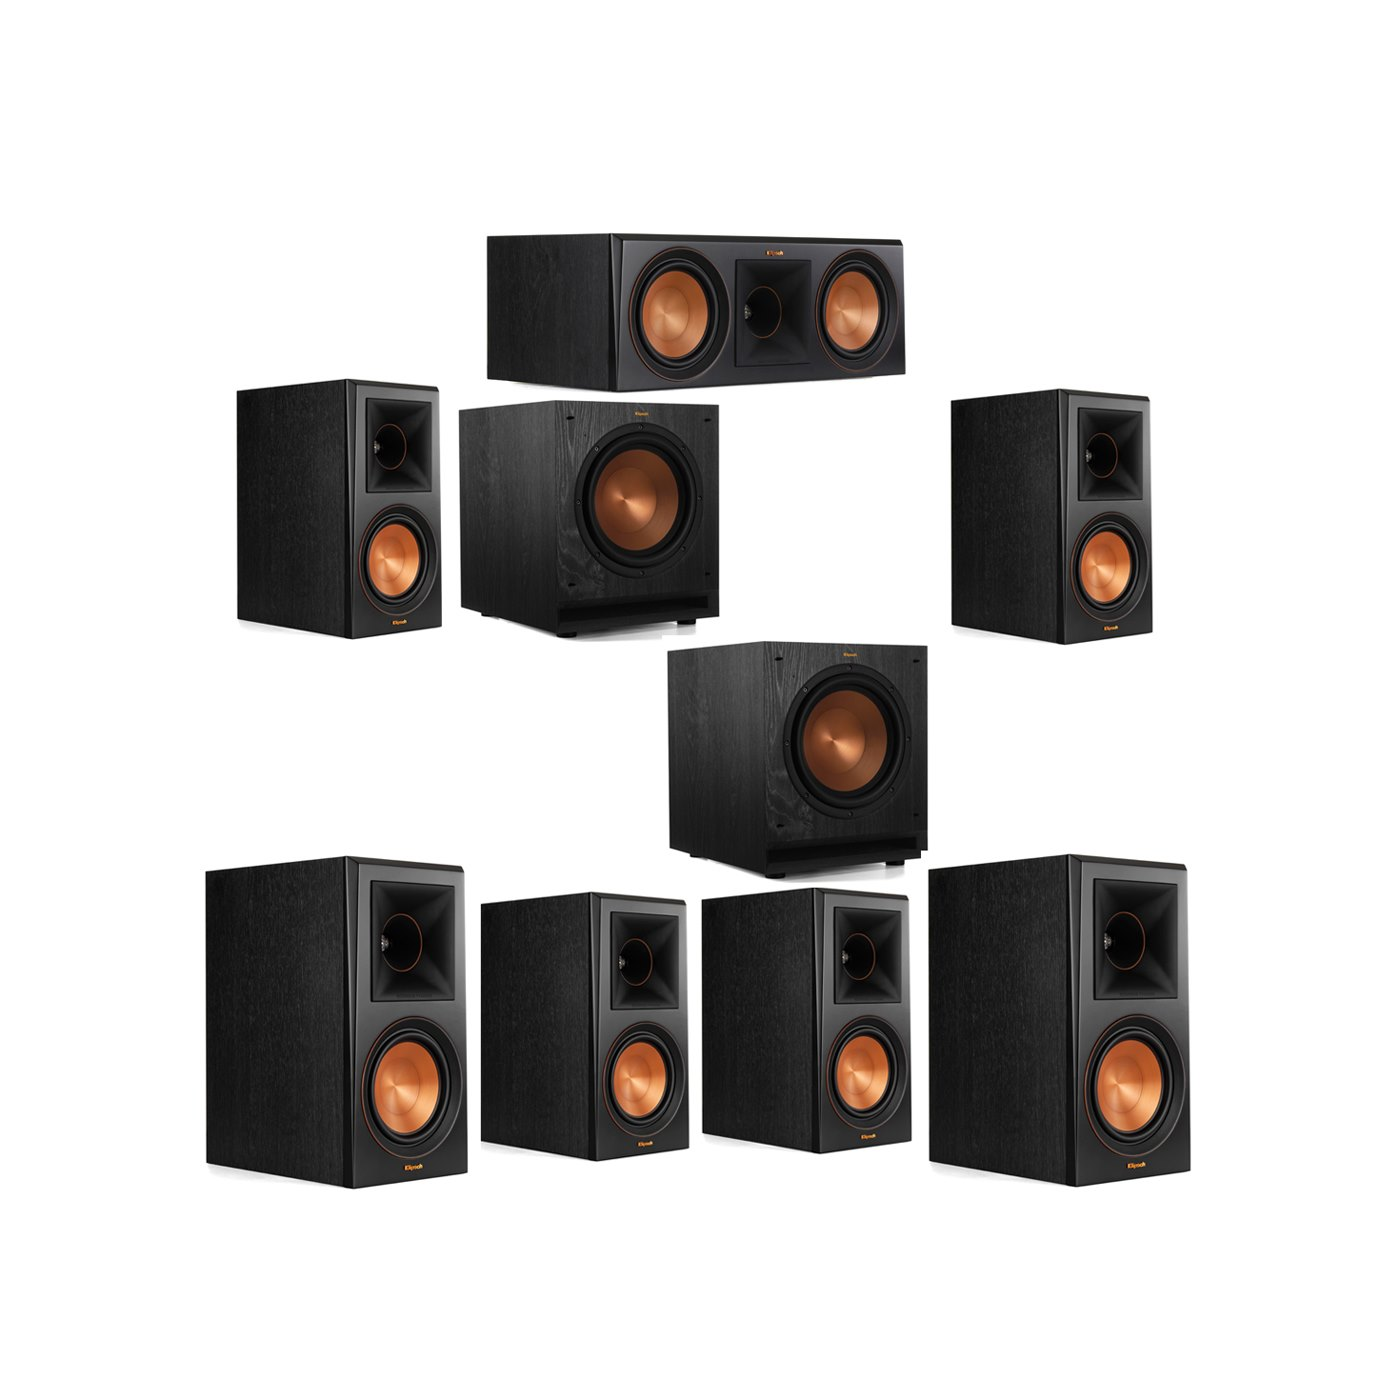 Klipsch 7.2 System with 2 RP-600M Bookshelf Speakers, 1 Klipsch RP-600C Center Speaker, 4 Klipsch RP-600M Surround Speakers, 2 Klipsch SPL-100 Subwoofers